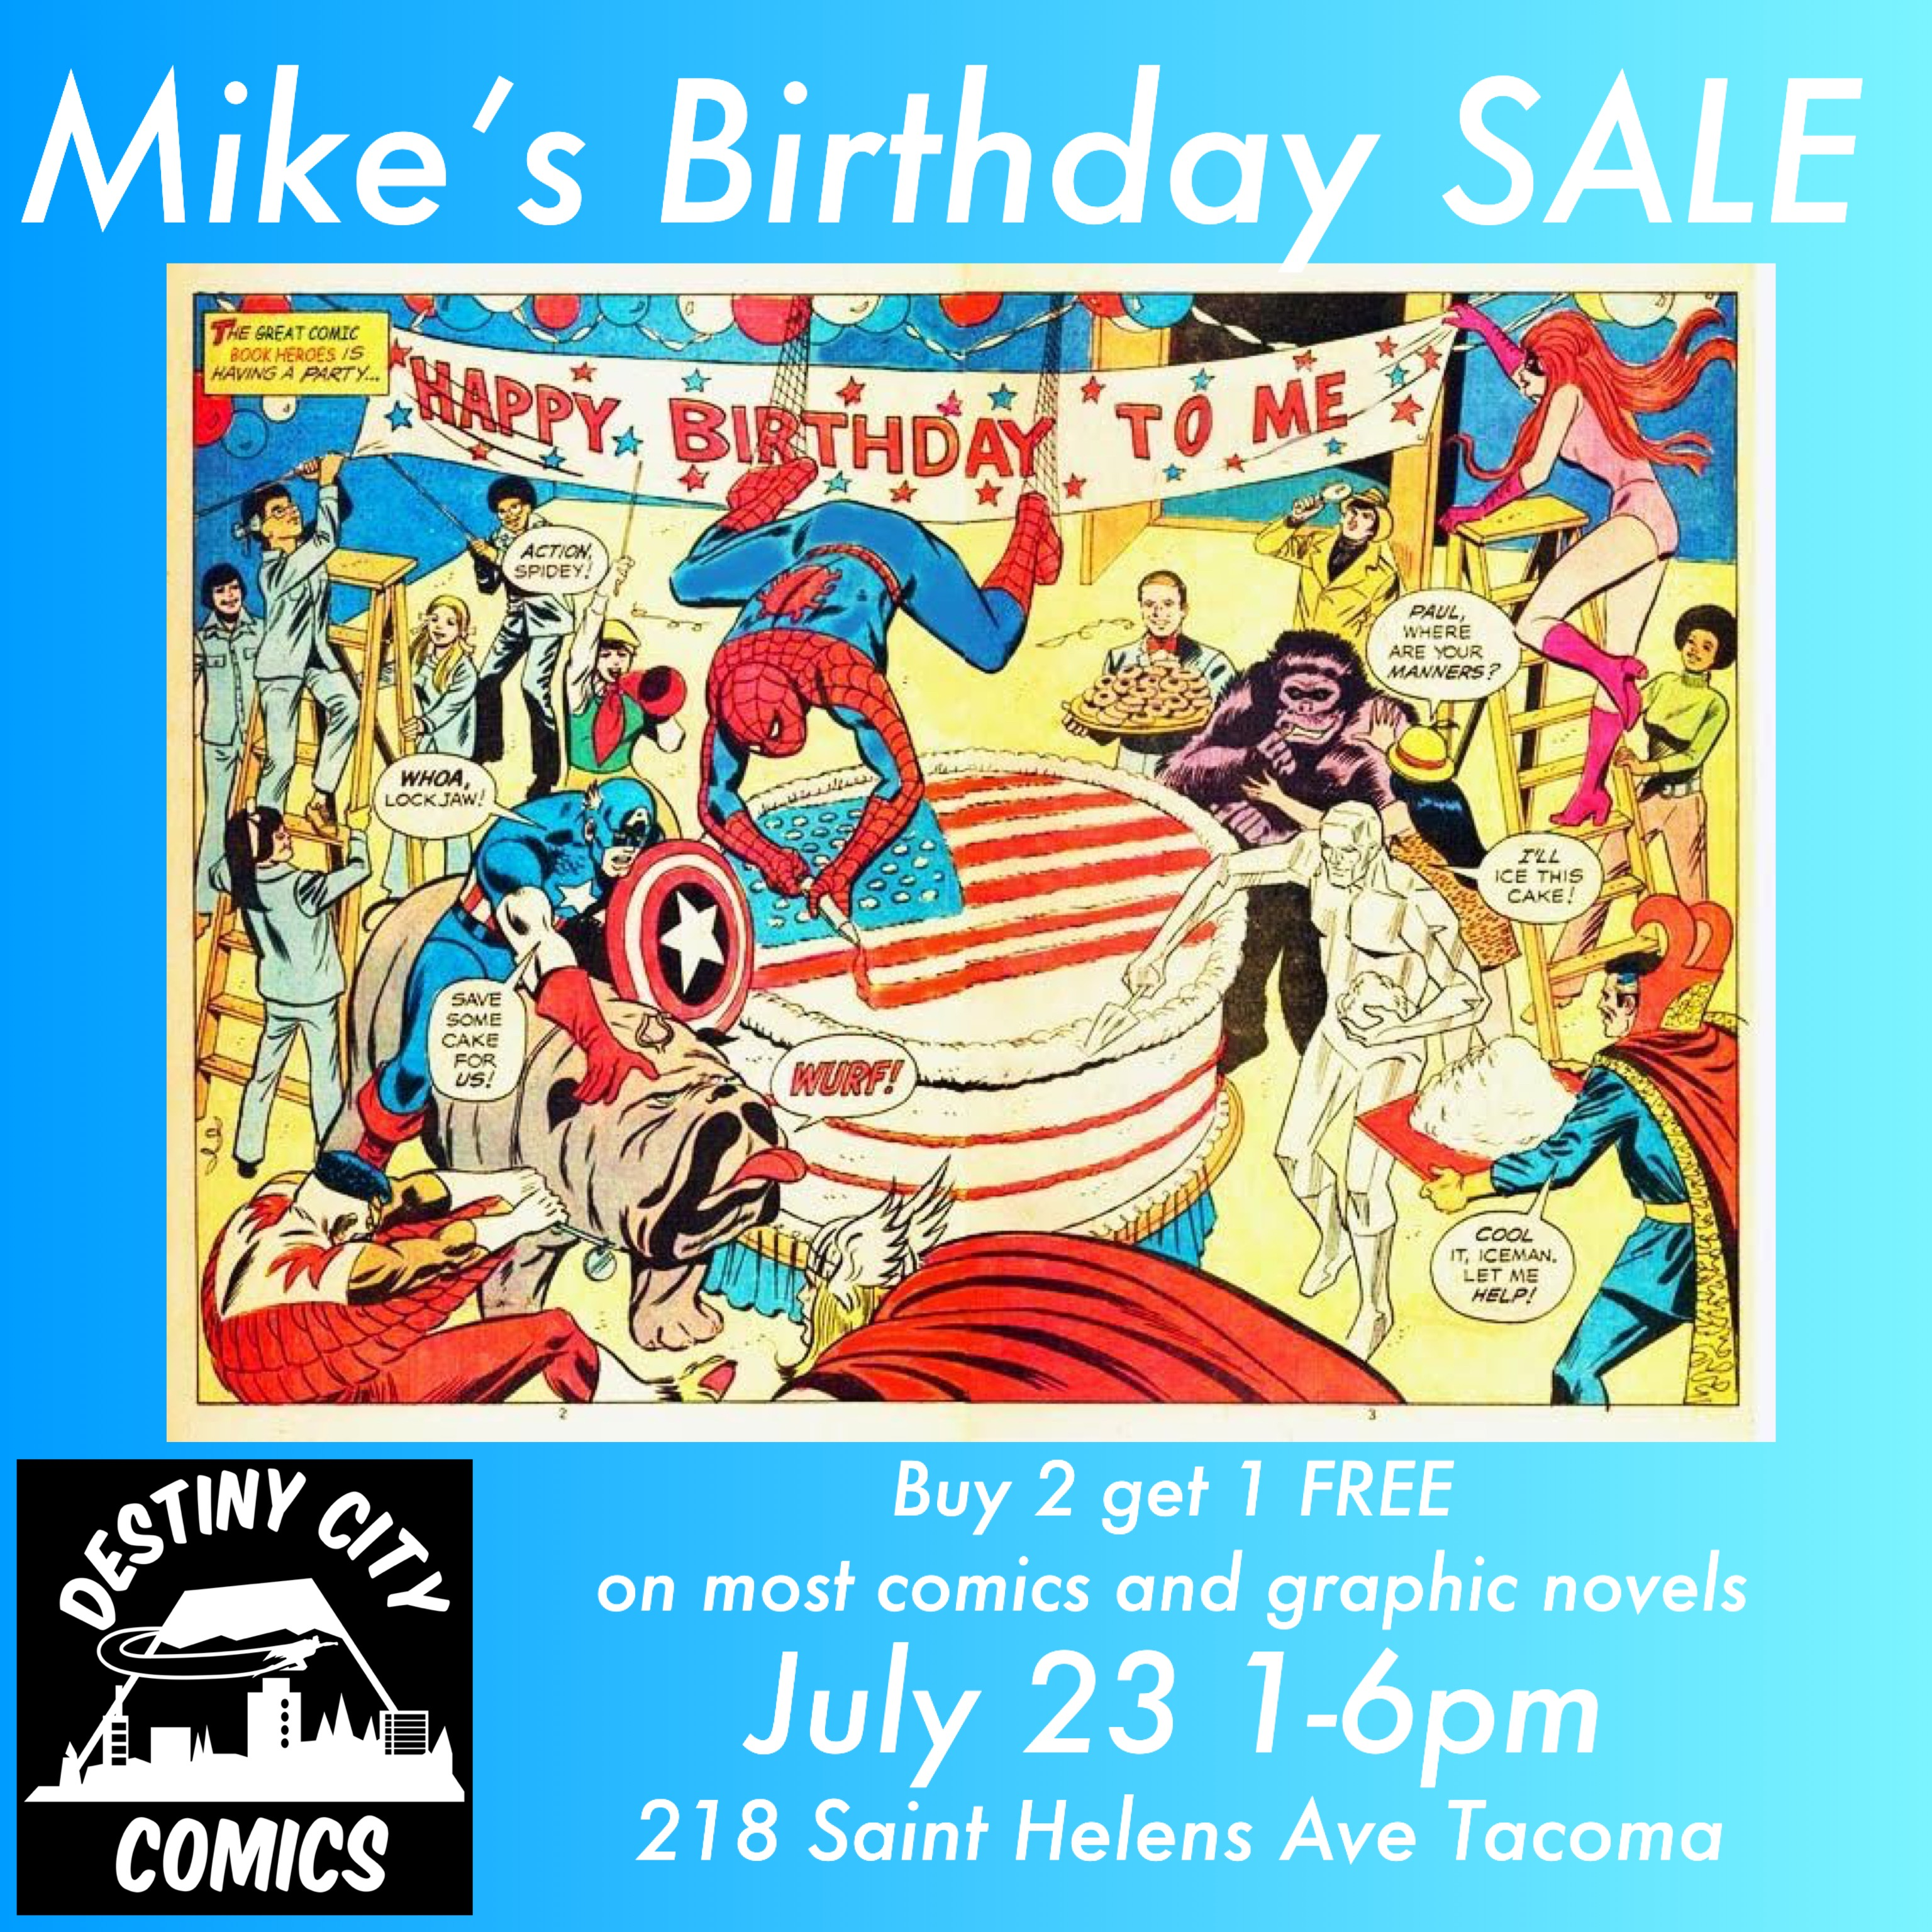 Buy 2 Get 1 FREE! Mike's Birthday Sale